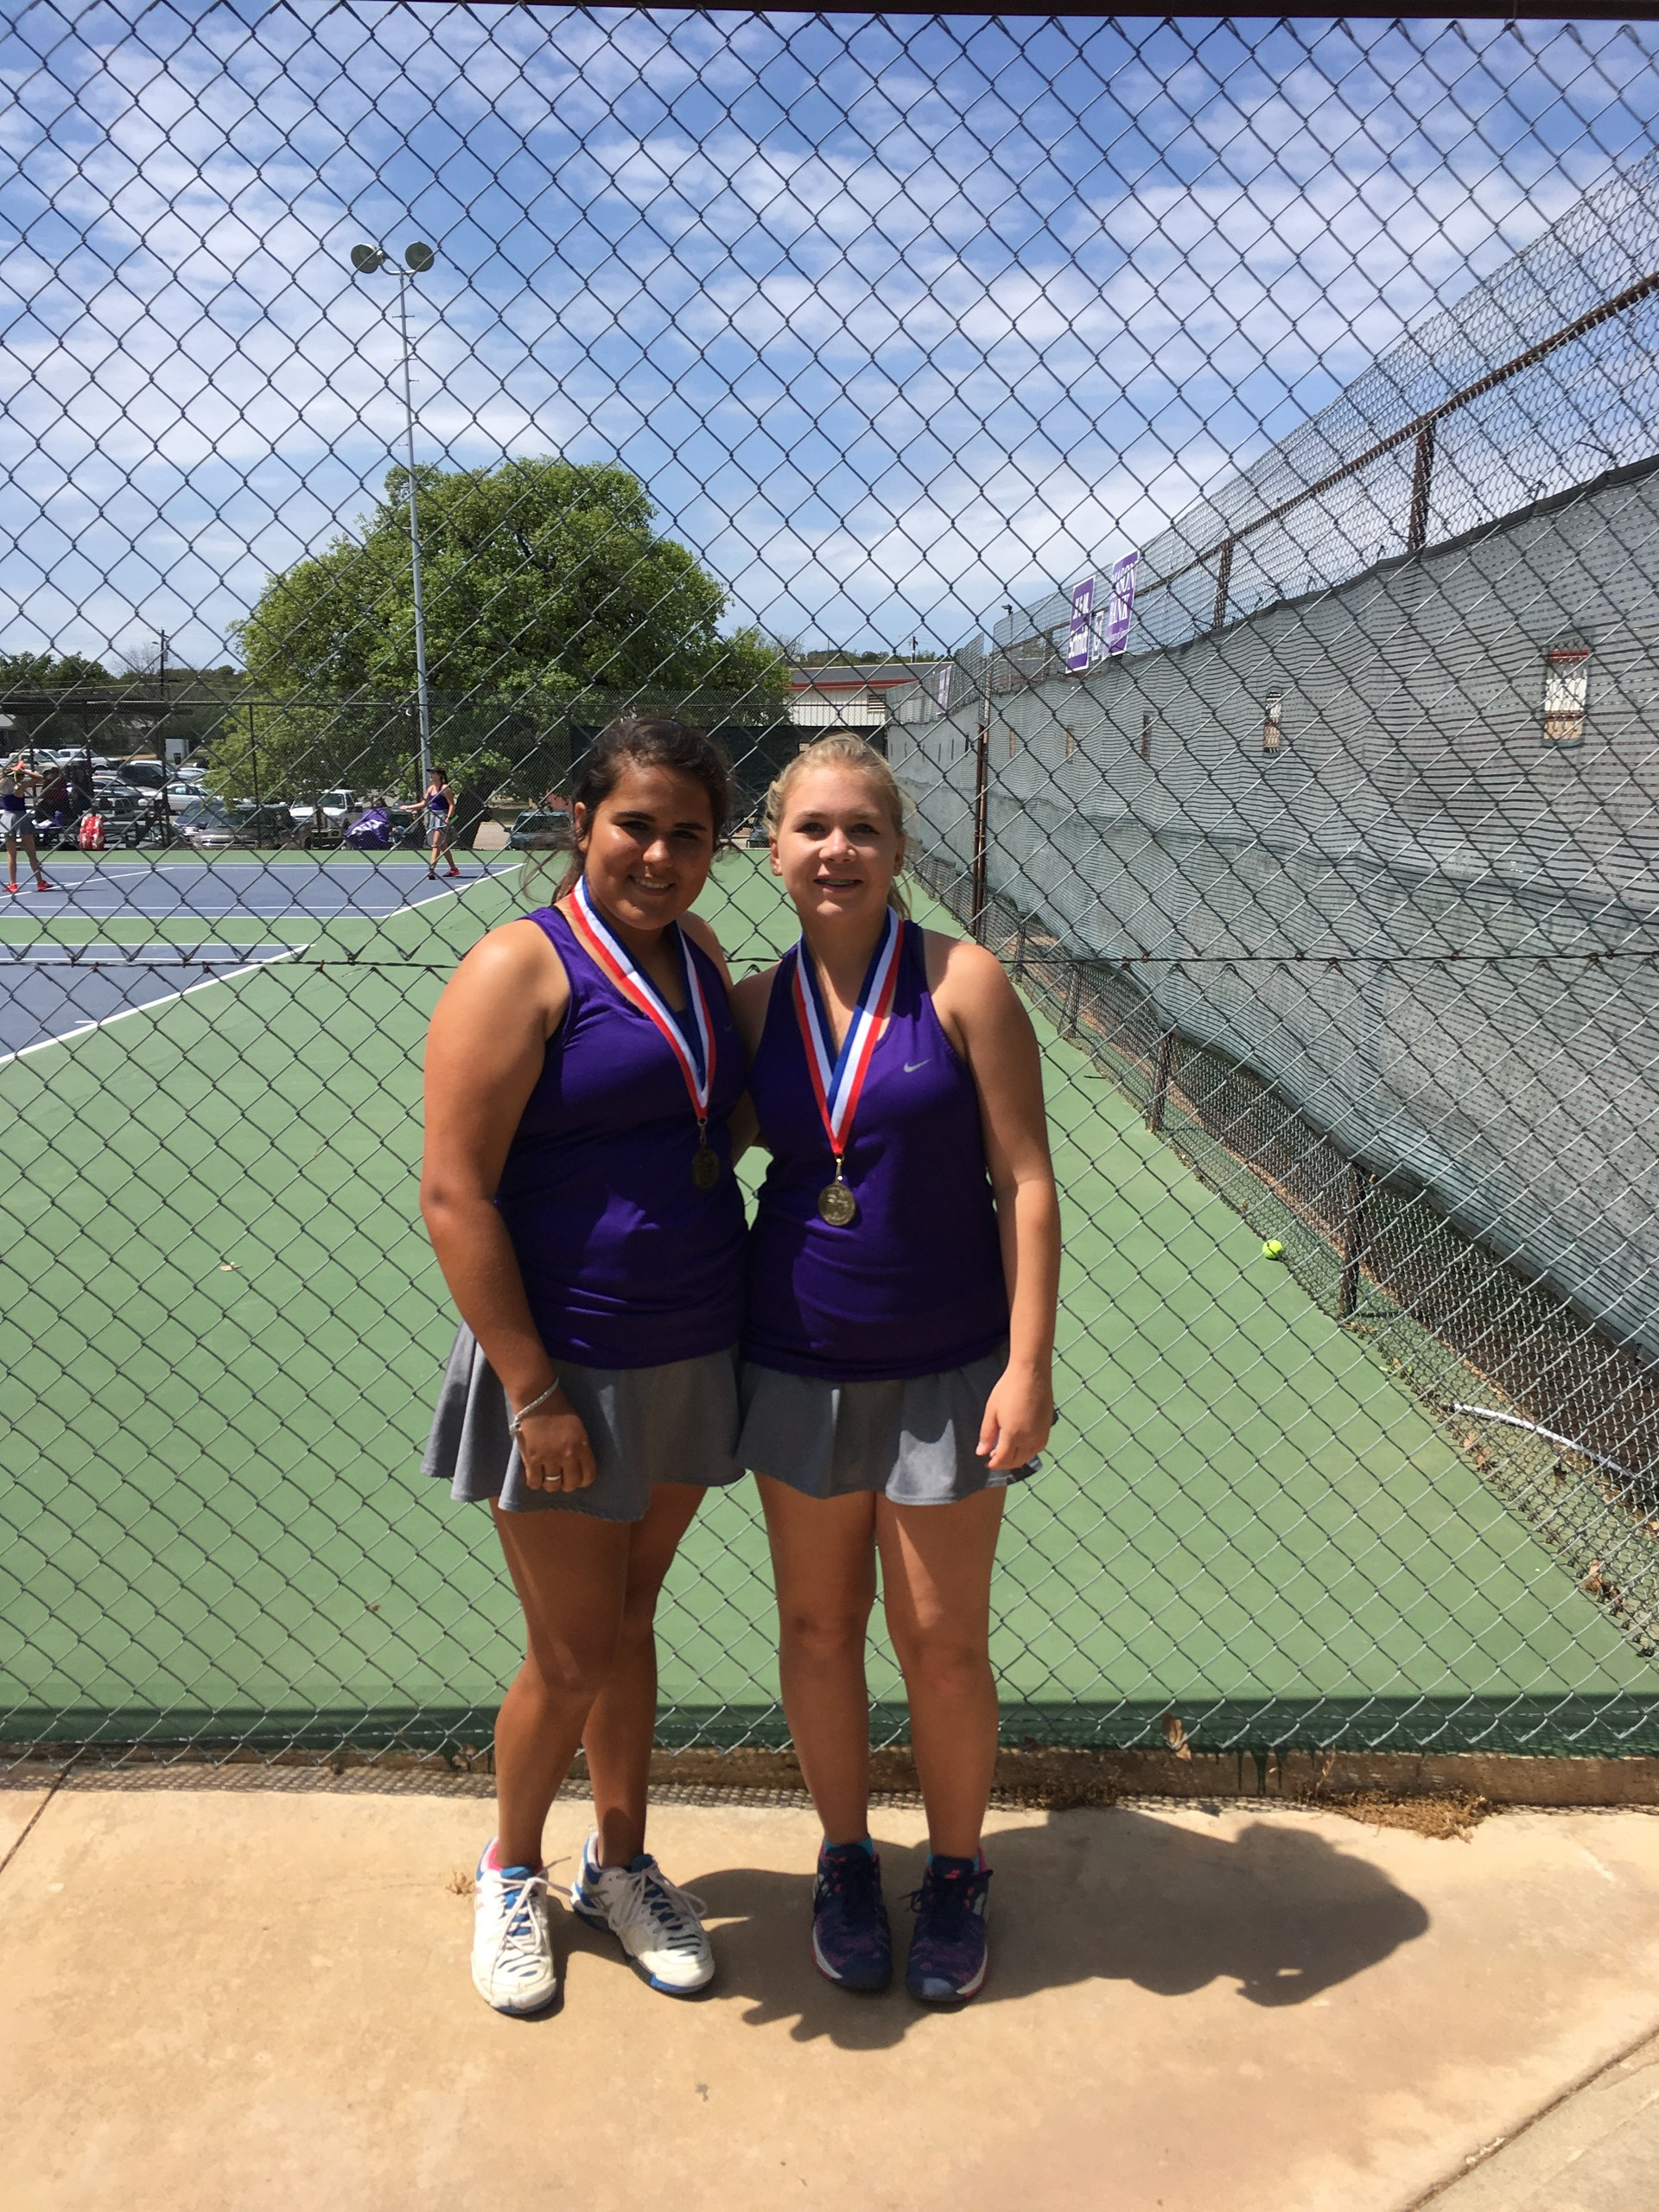 Makenna Palacio & Kenzie Ake - JV Girls Doubles Champs